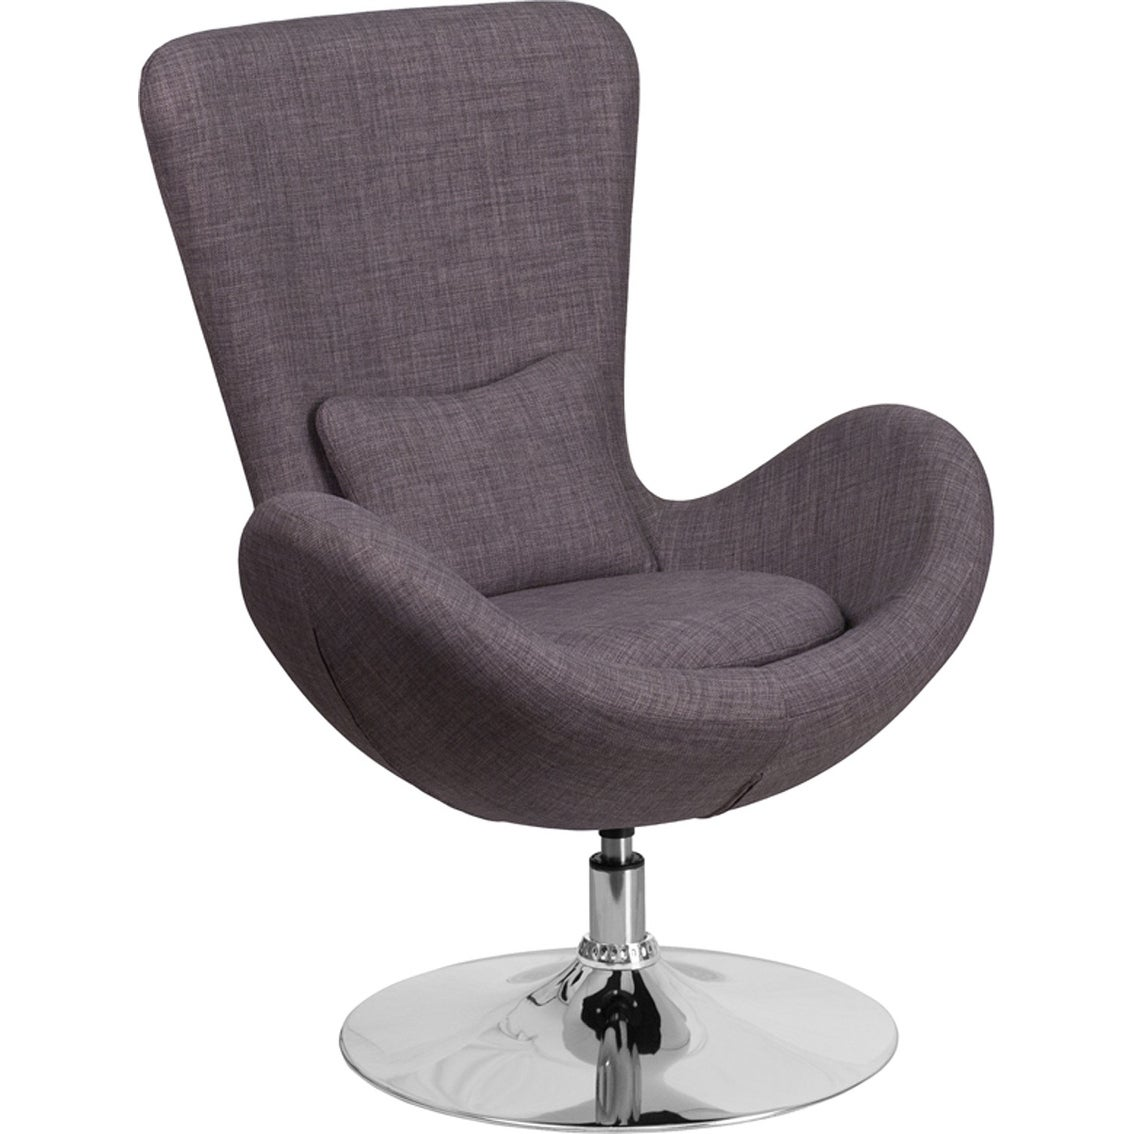 Radisson Dark Gray Fabric Side Office Reception/Guest Egg Chair, Curved Arms